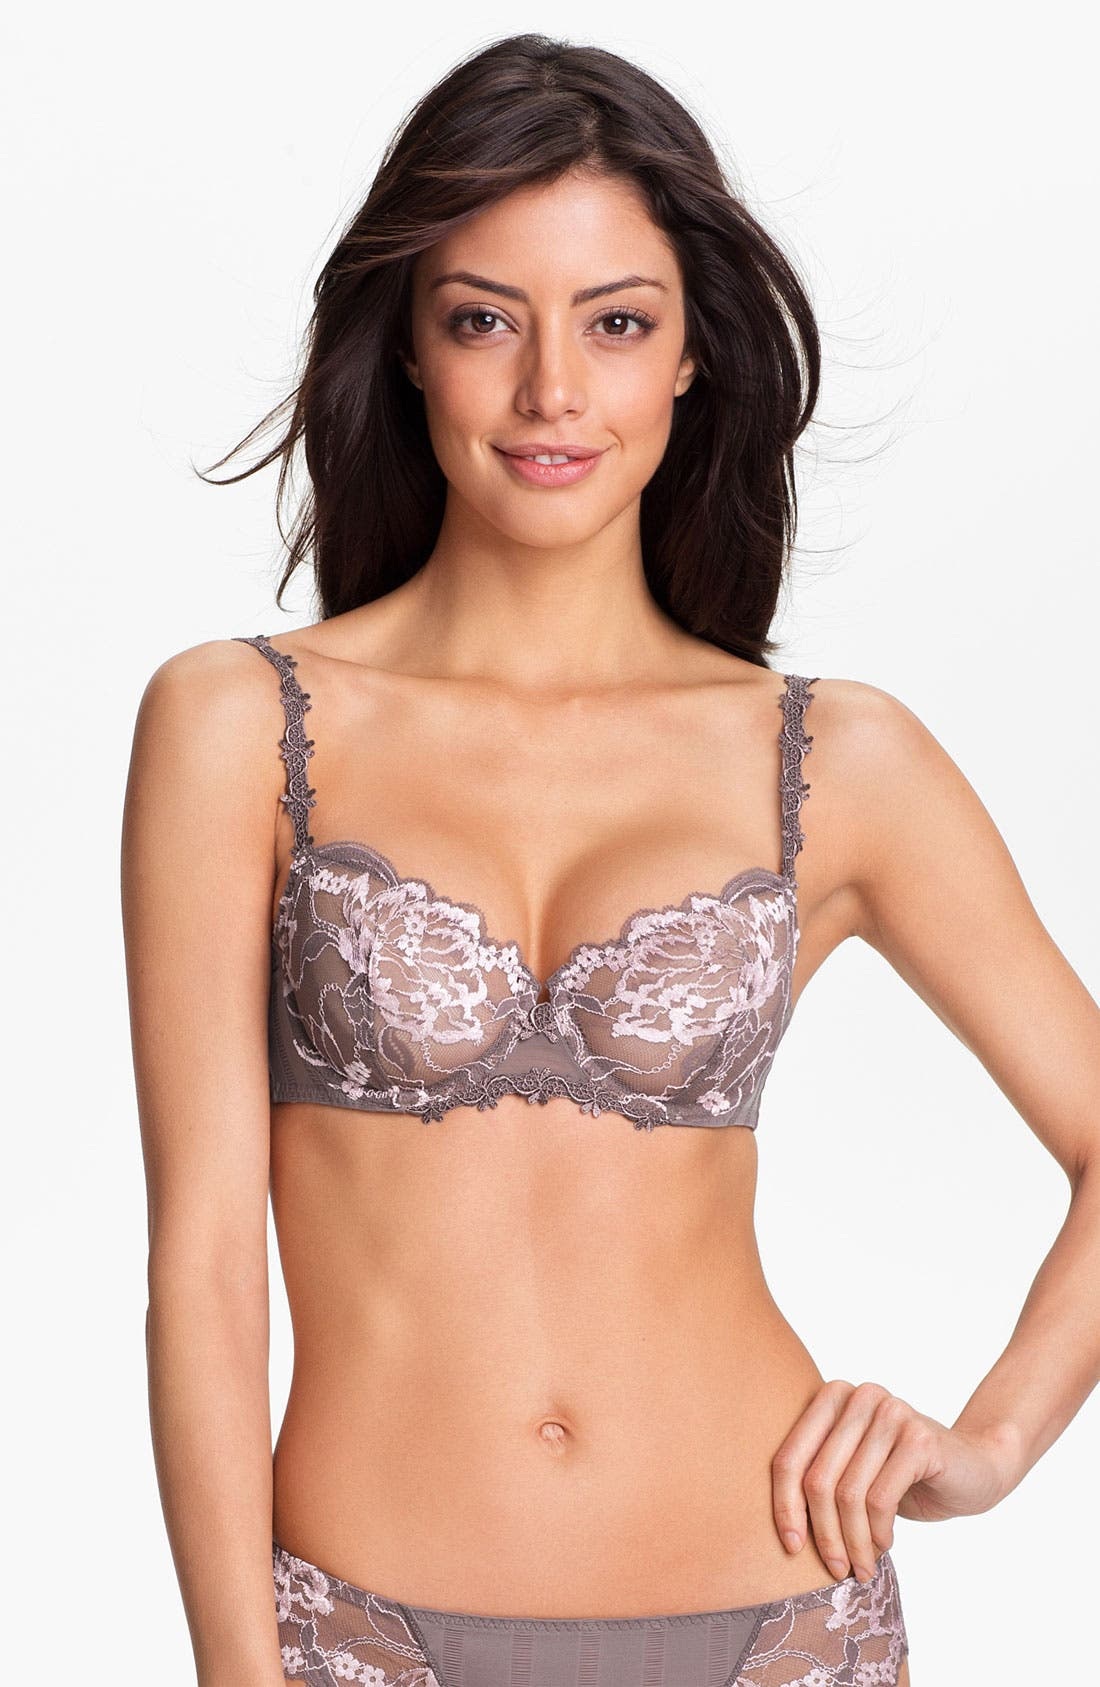 'Amour' Underwire Demi Bra,                             Main thumbnail 4, color,